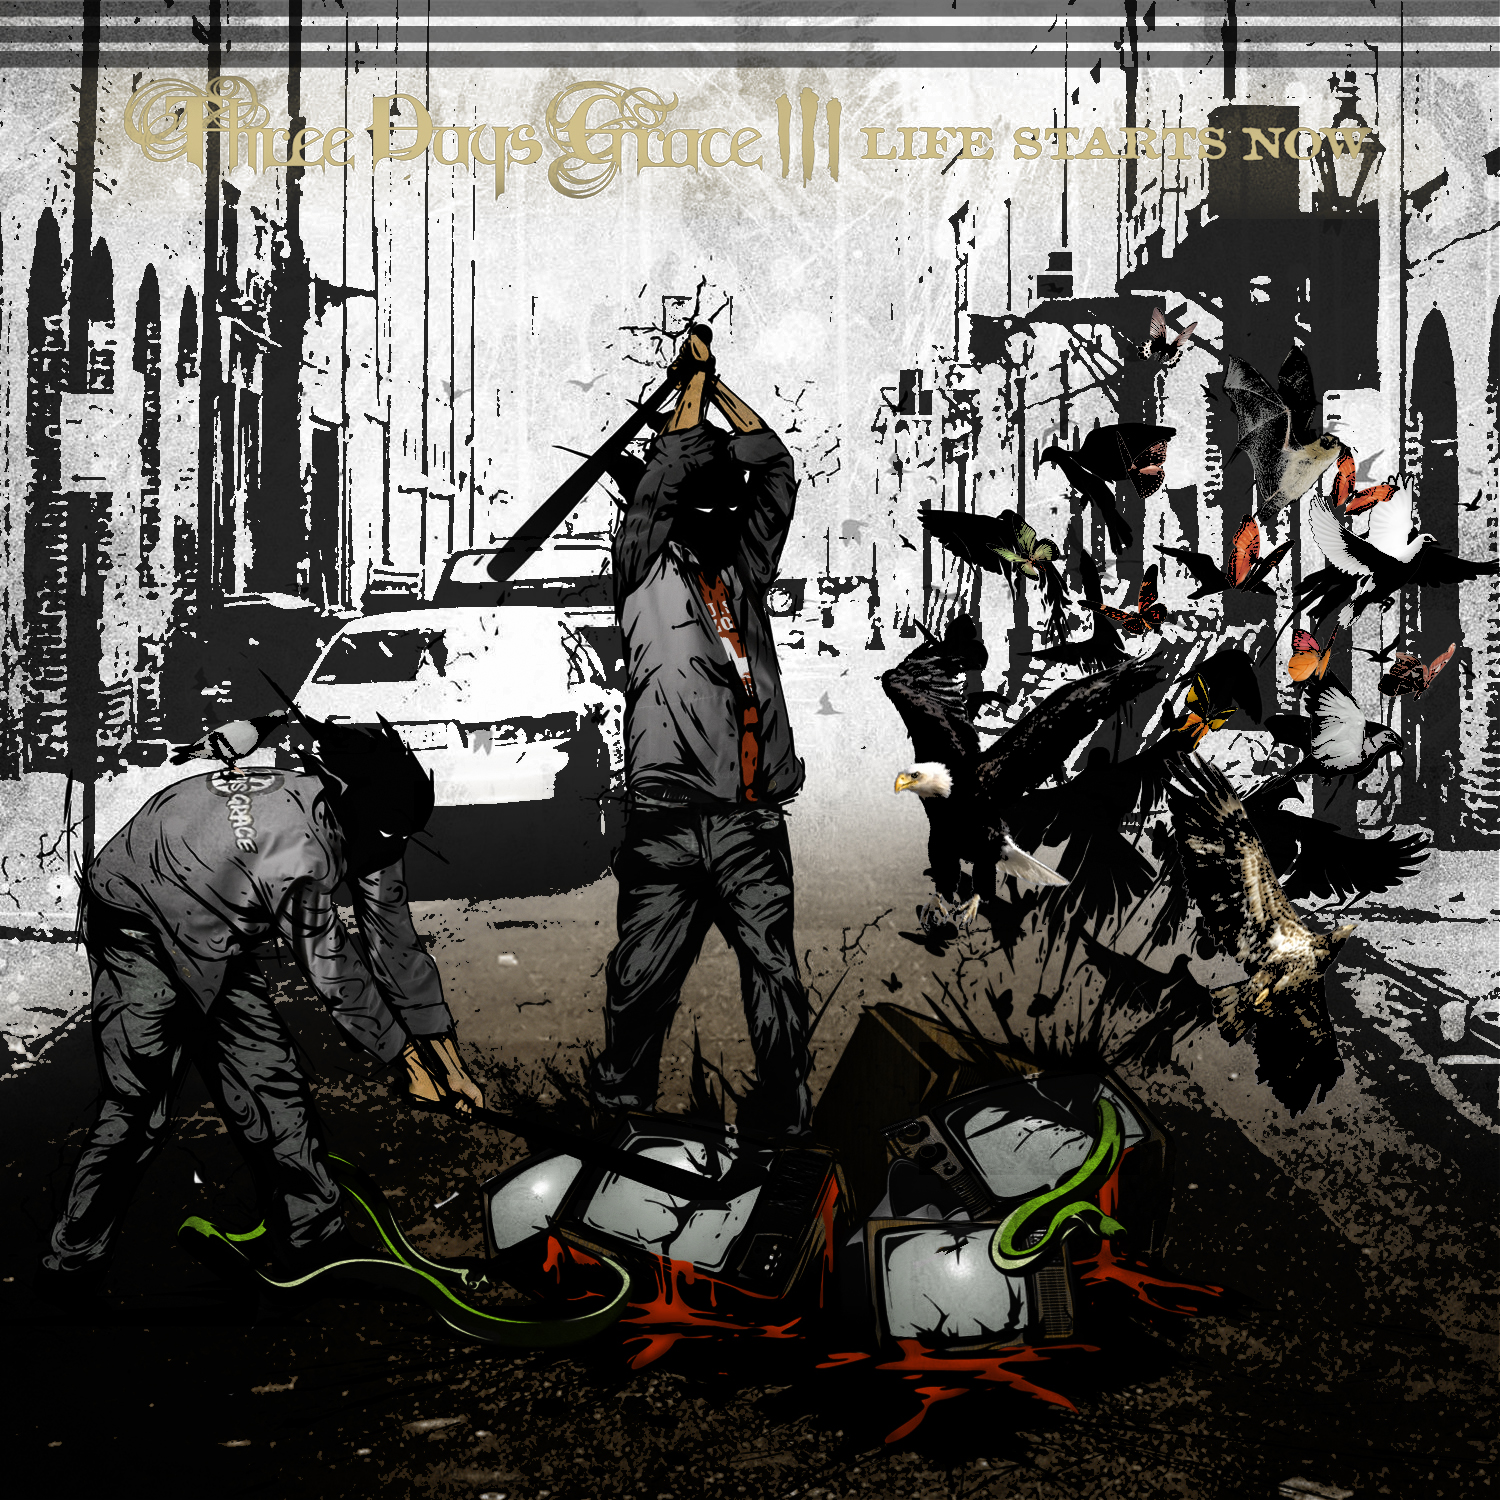 photoshop submission for 39 three days grace album cover mash up 39 contest design 8917433. Black Bedroom Furniture Sets. Home Design Ideas